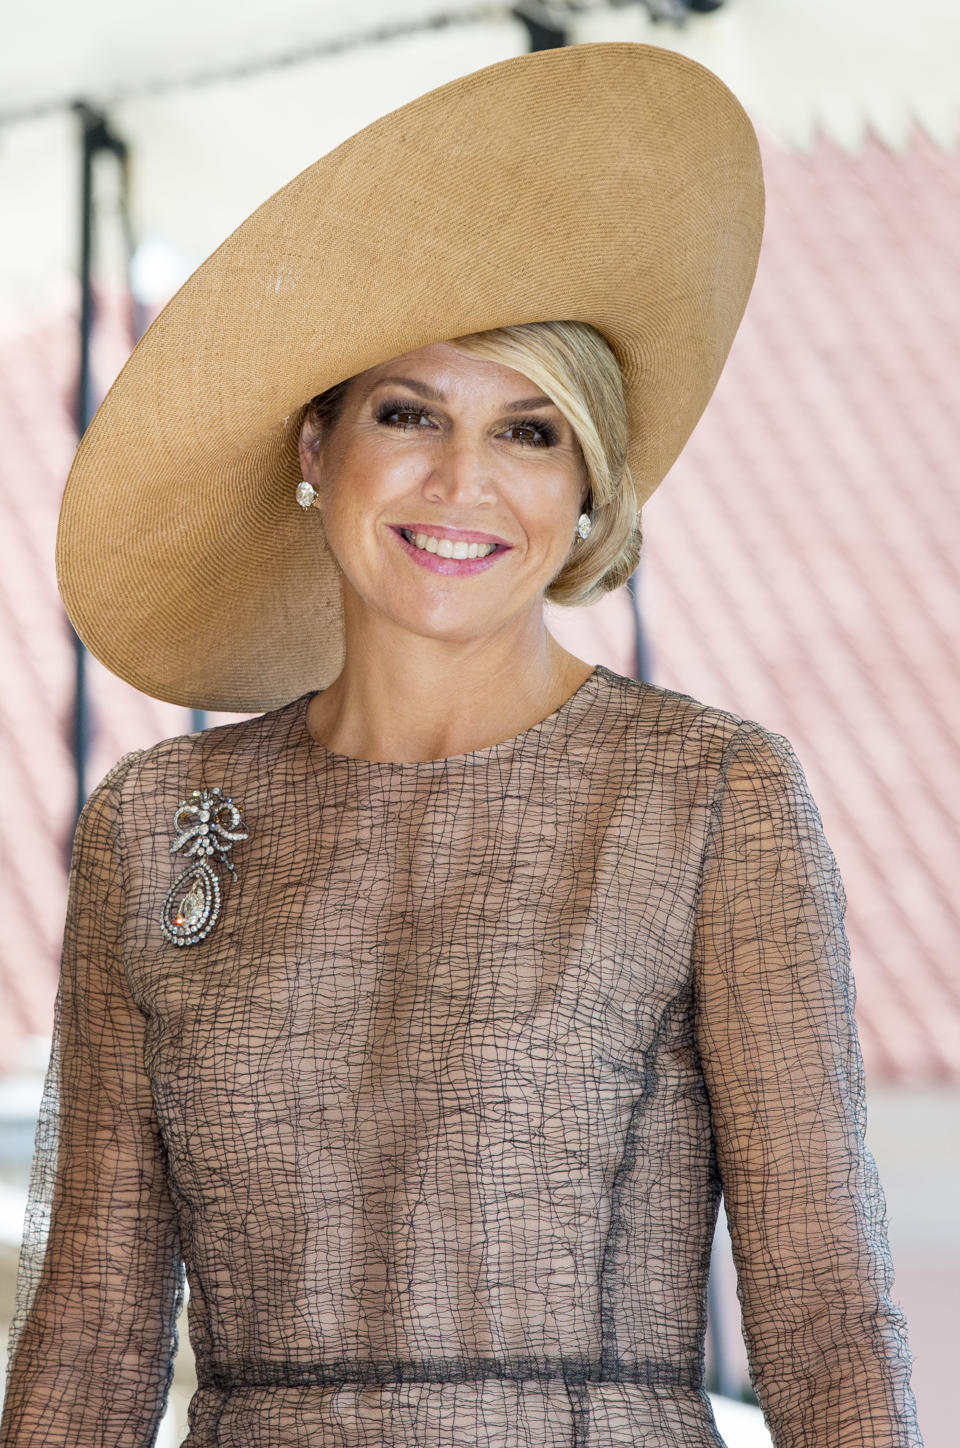 LISBOA CDP, PORTUGAL - OCTOBER 10: Queen Maxima of The Netherlands visits President Marcelo Rebelo de Sousa of Portugal at Palacio de Belem on October 10, 2017 in Lisboa CDP, Portugal. (Photo by Patrick van Katwijk/Getty Images)